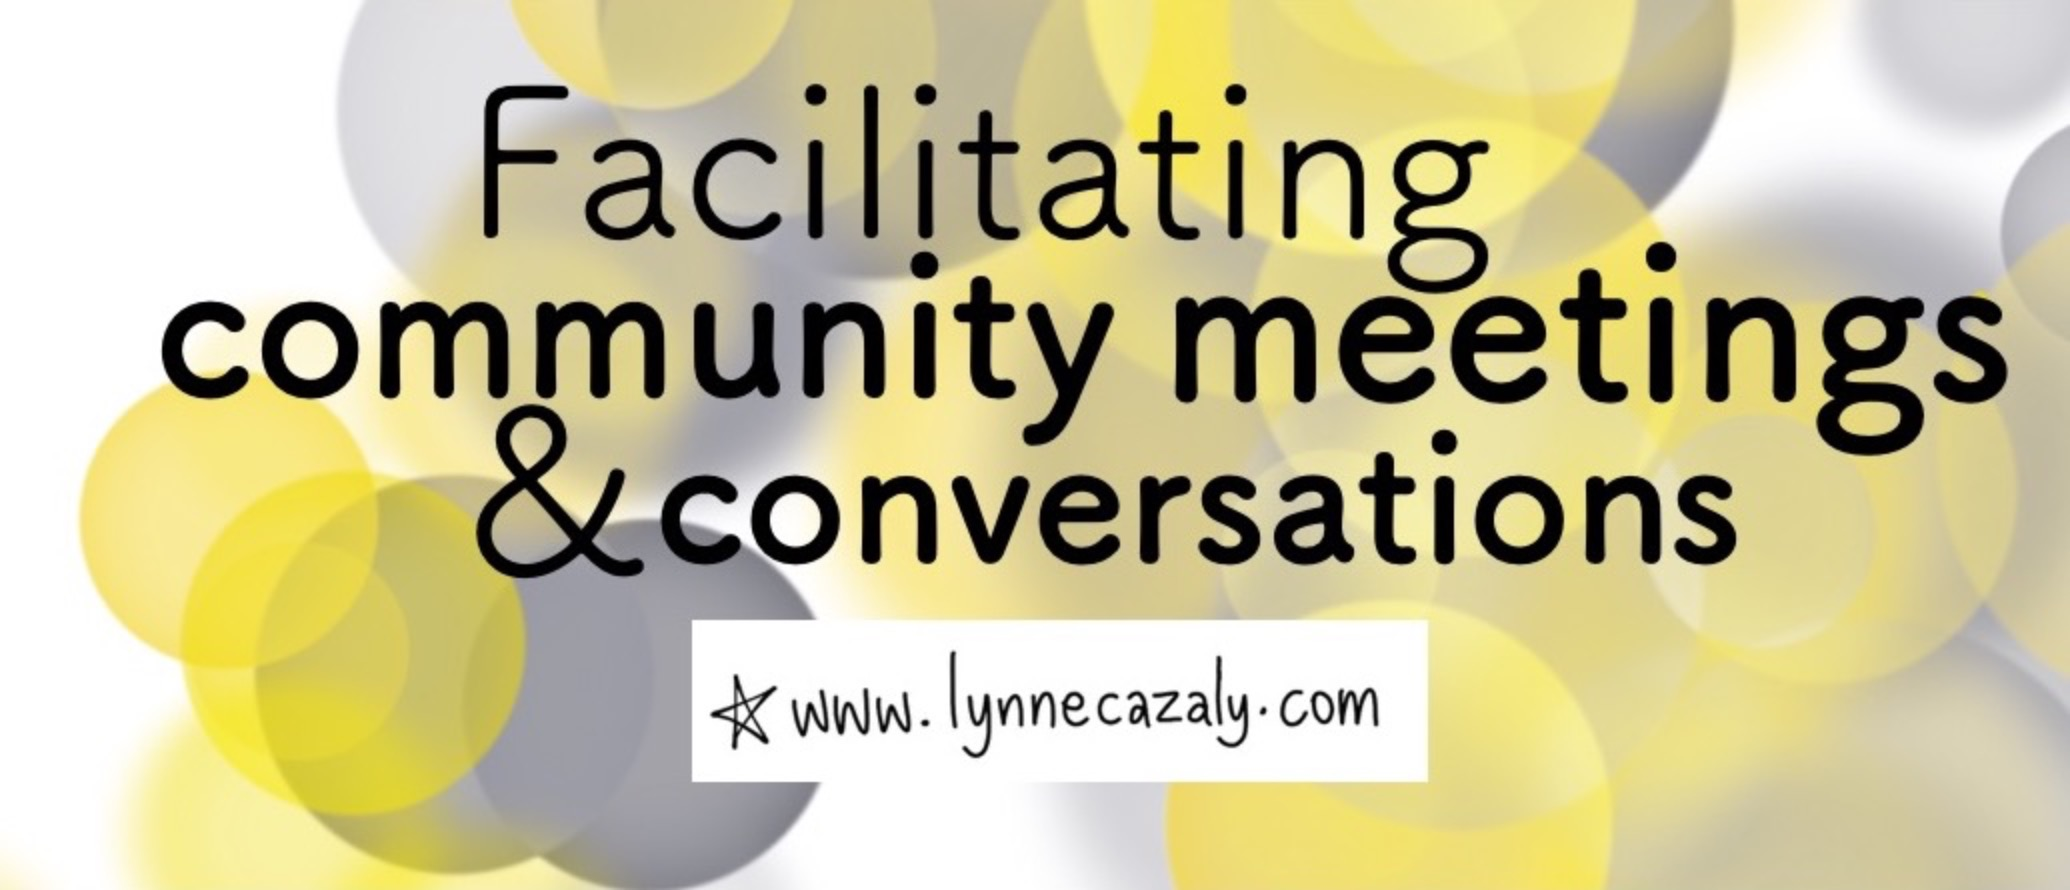 Facilitating Community Meetings & Conversations - ONLINE PROGRAM